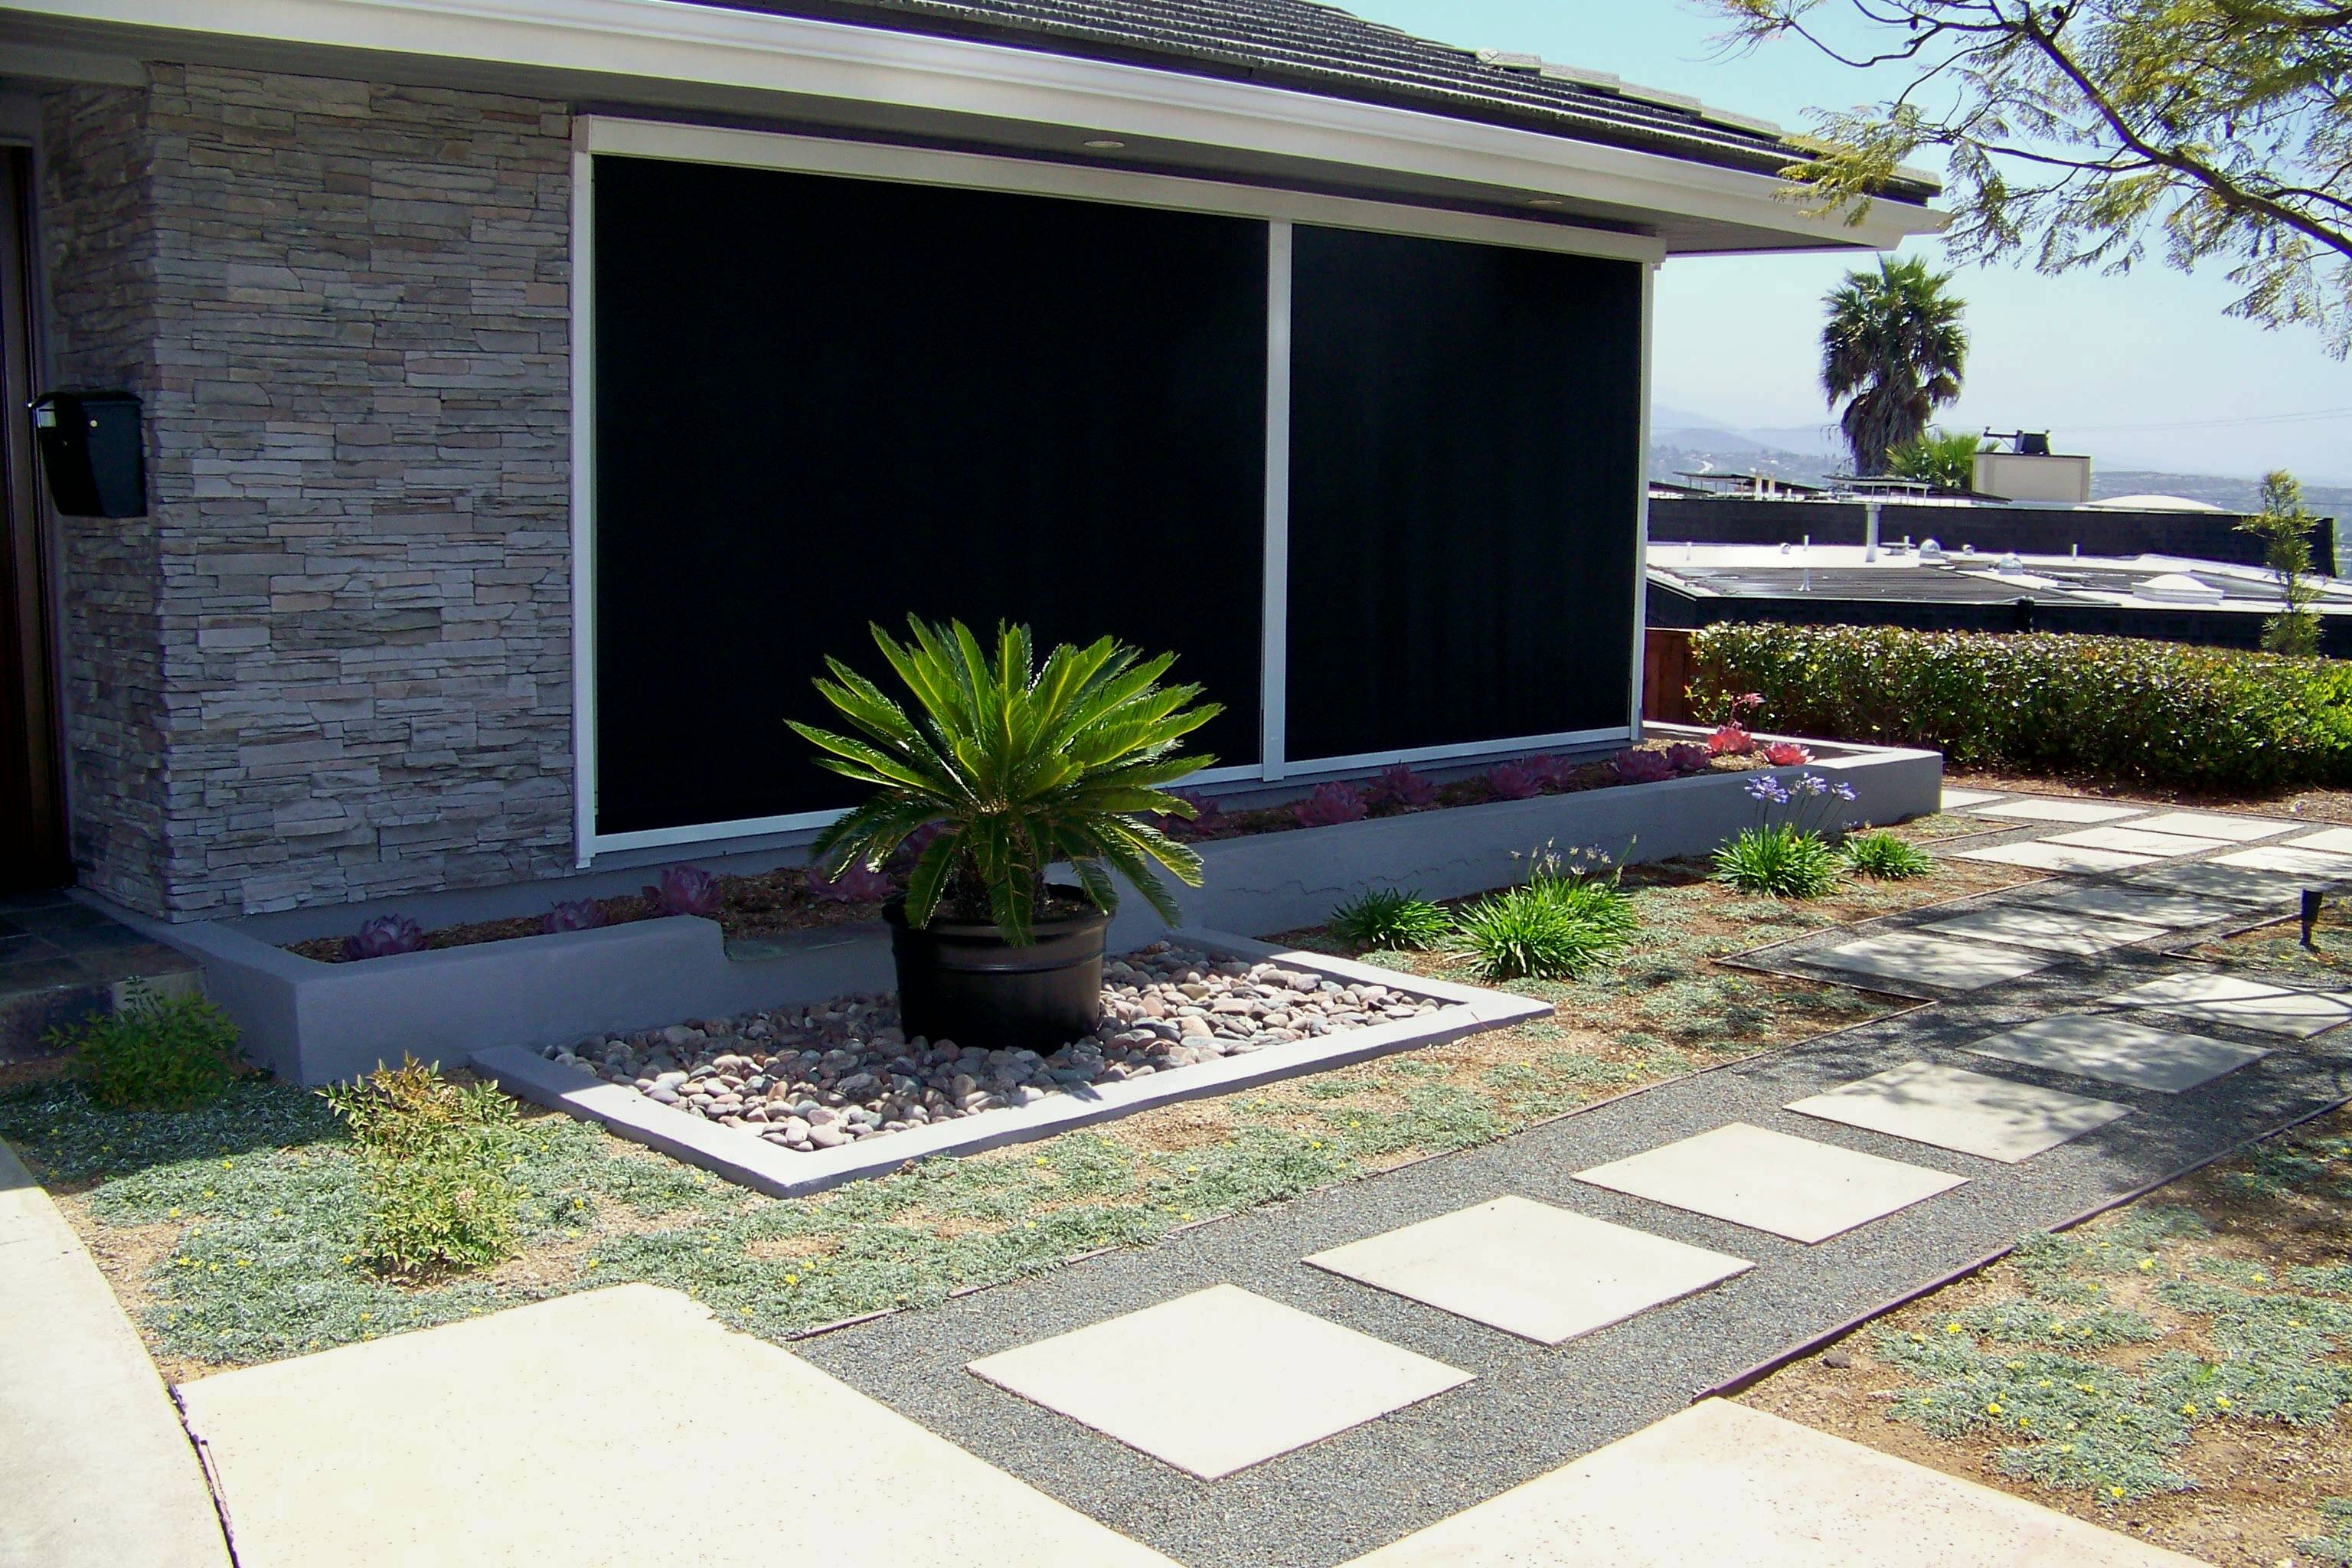 Backyard Design San Diego oceanside backyard landscape design 100_6556